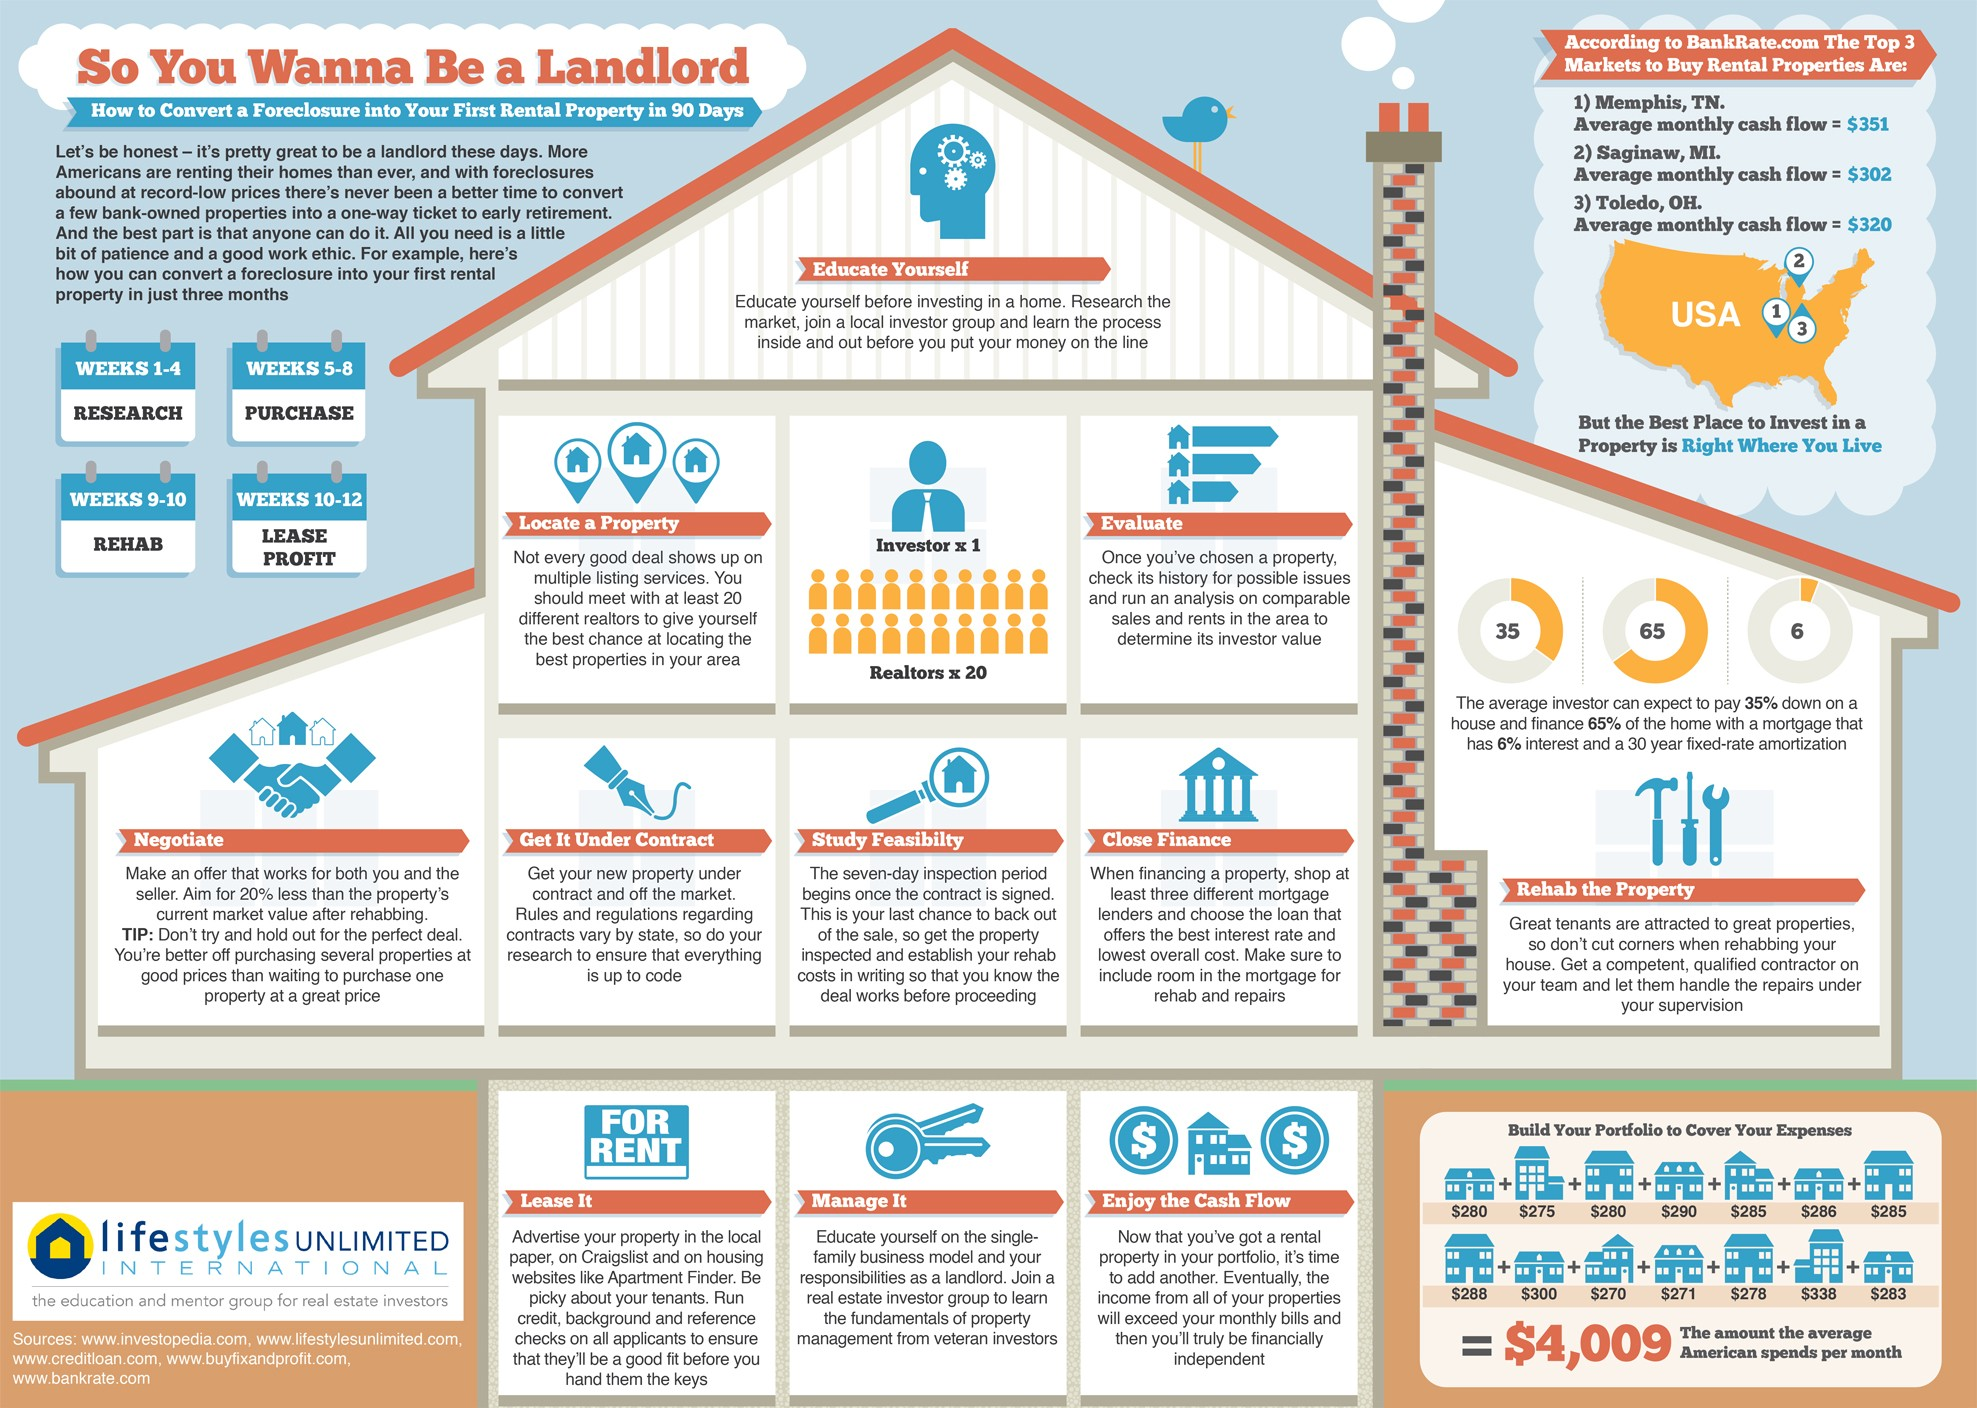 So You Wanna Be A Landlord (Infographic)